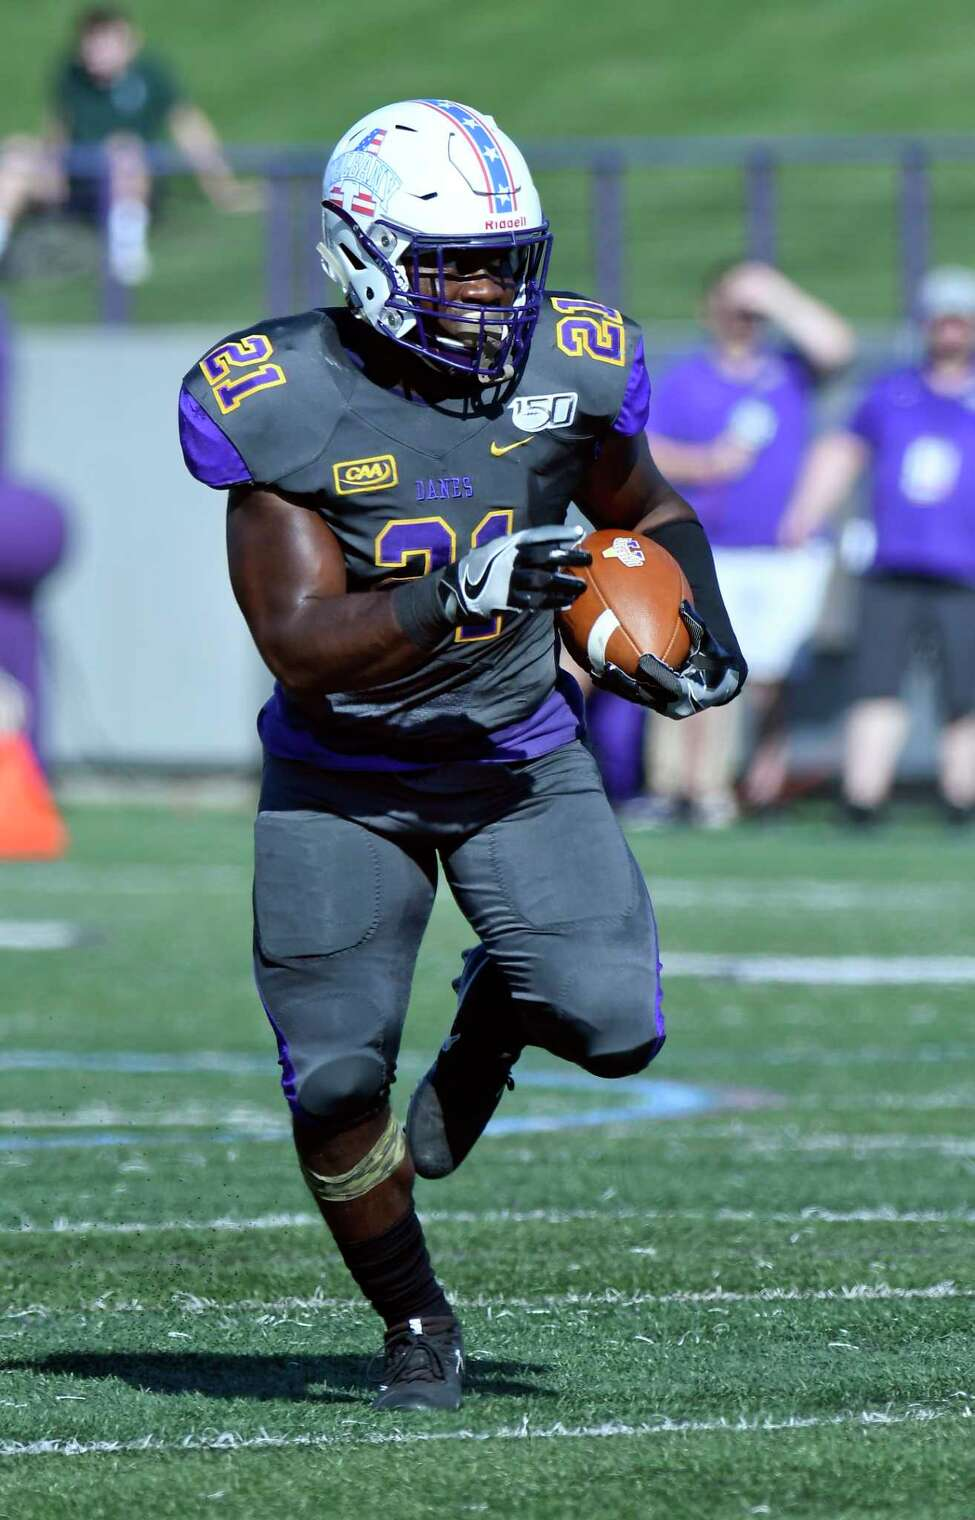 University at Albany running back Karl Mofor (21) scores a touchdown against Lafayette during the first half of an NCAA college football game Saturday, Sept. 21, 2019, in Albany, N.Y.